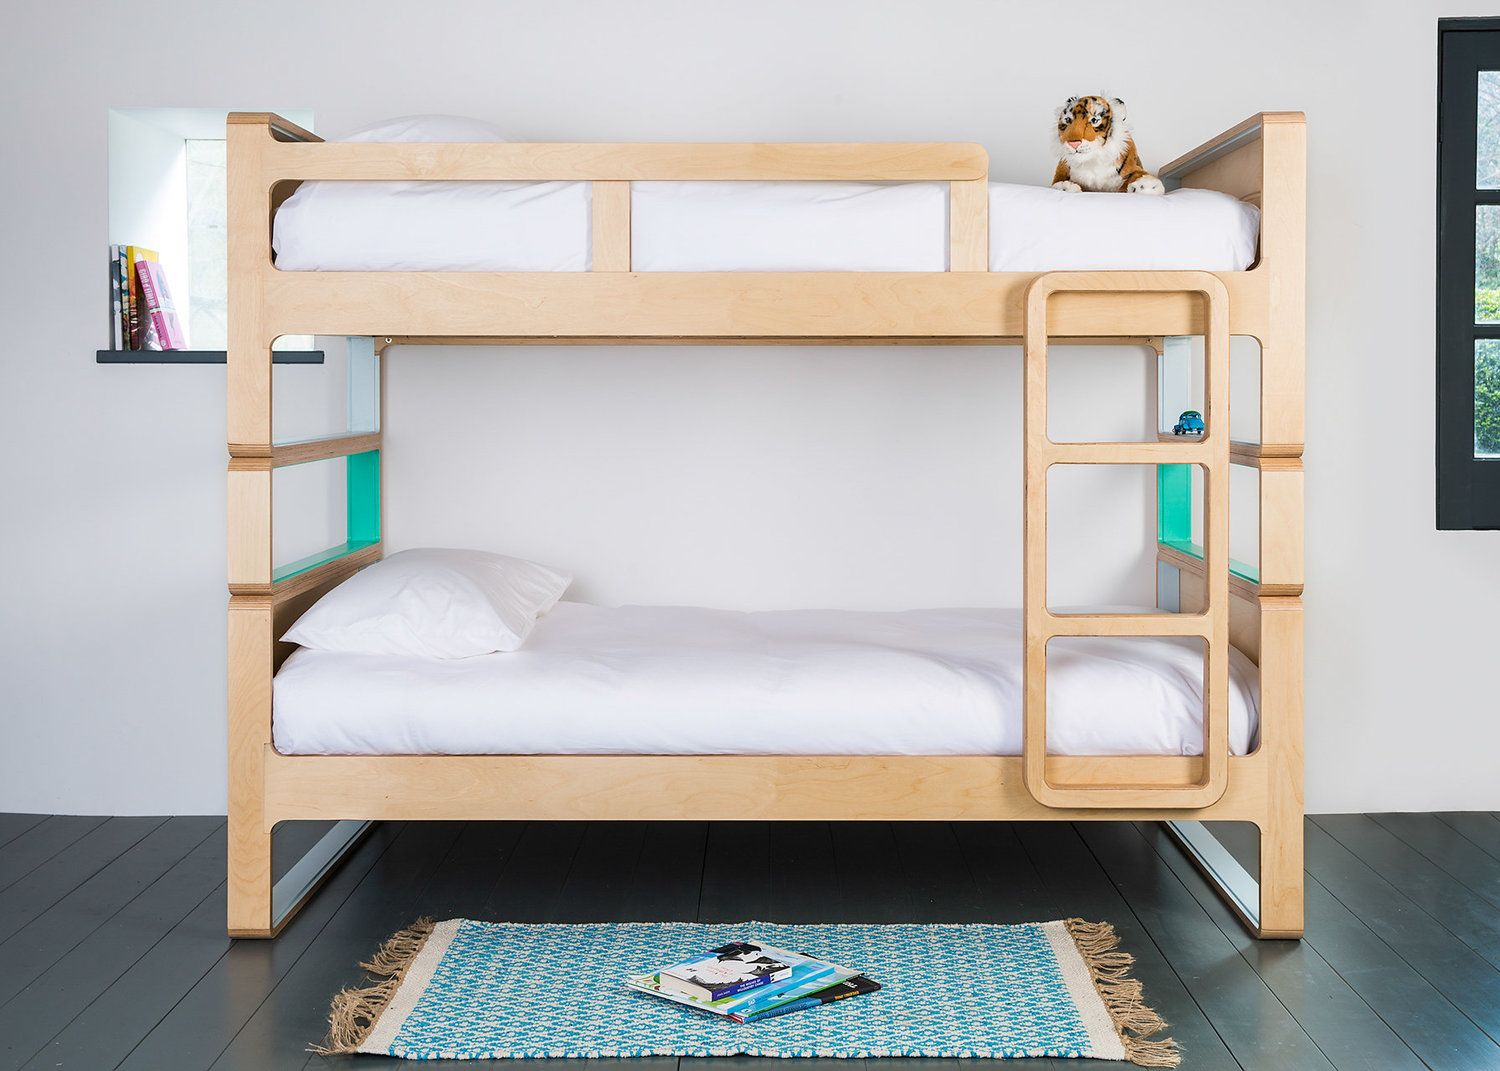 Best Stylish And Superbly Comfortable Full Size Bunk Beds With 400 x 300